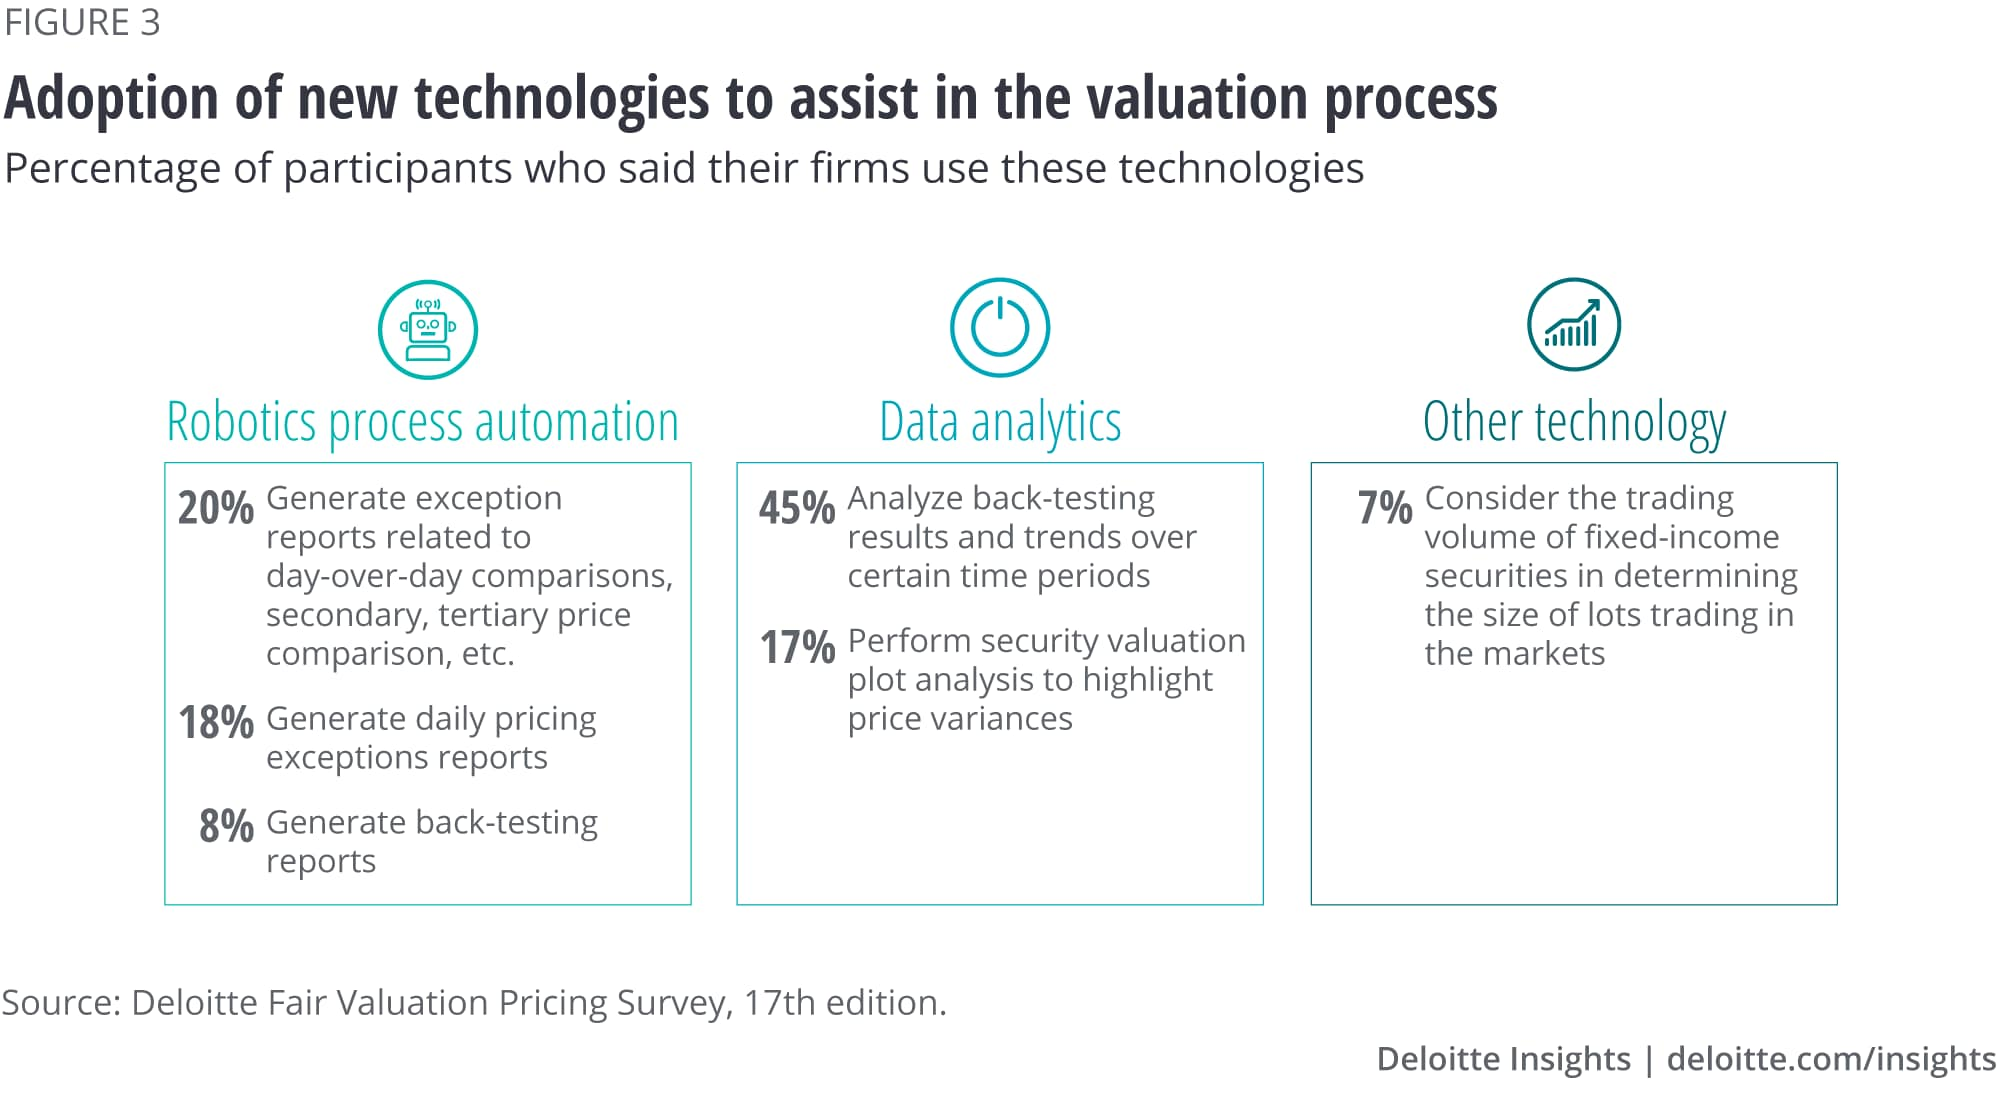 Adoption of new technologies to assist in the pricing process has been slow